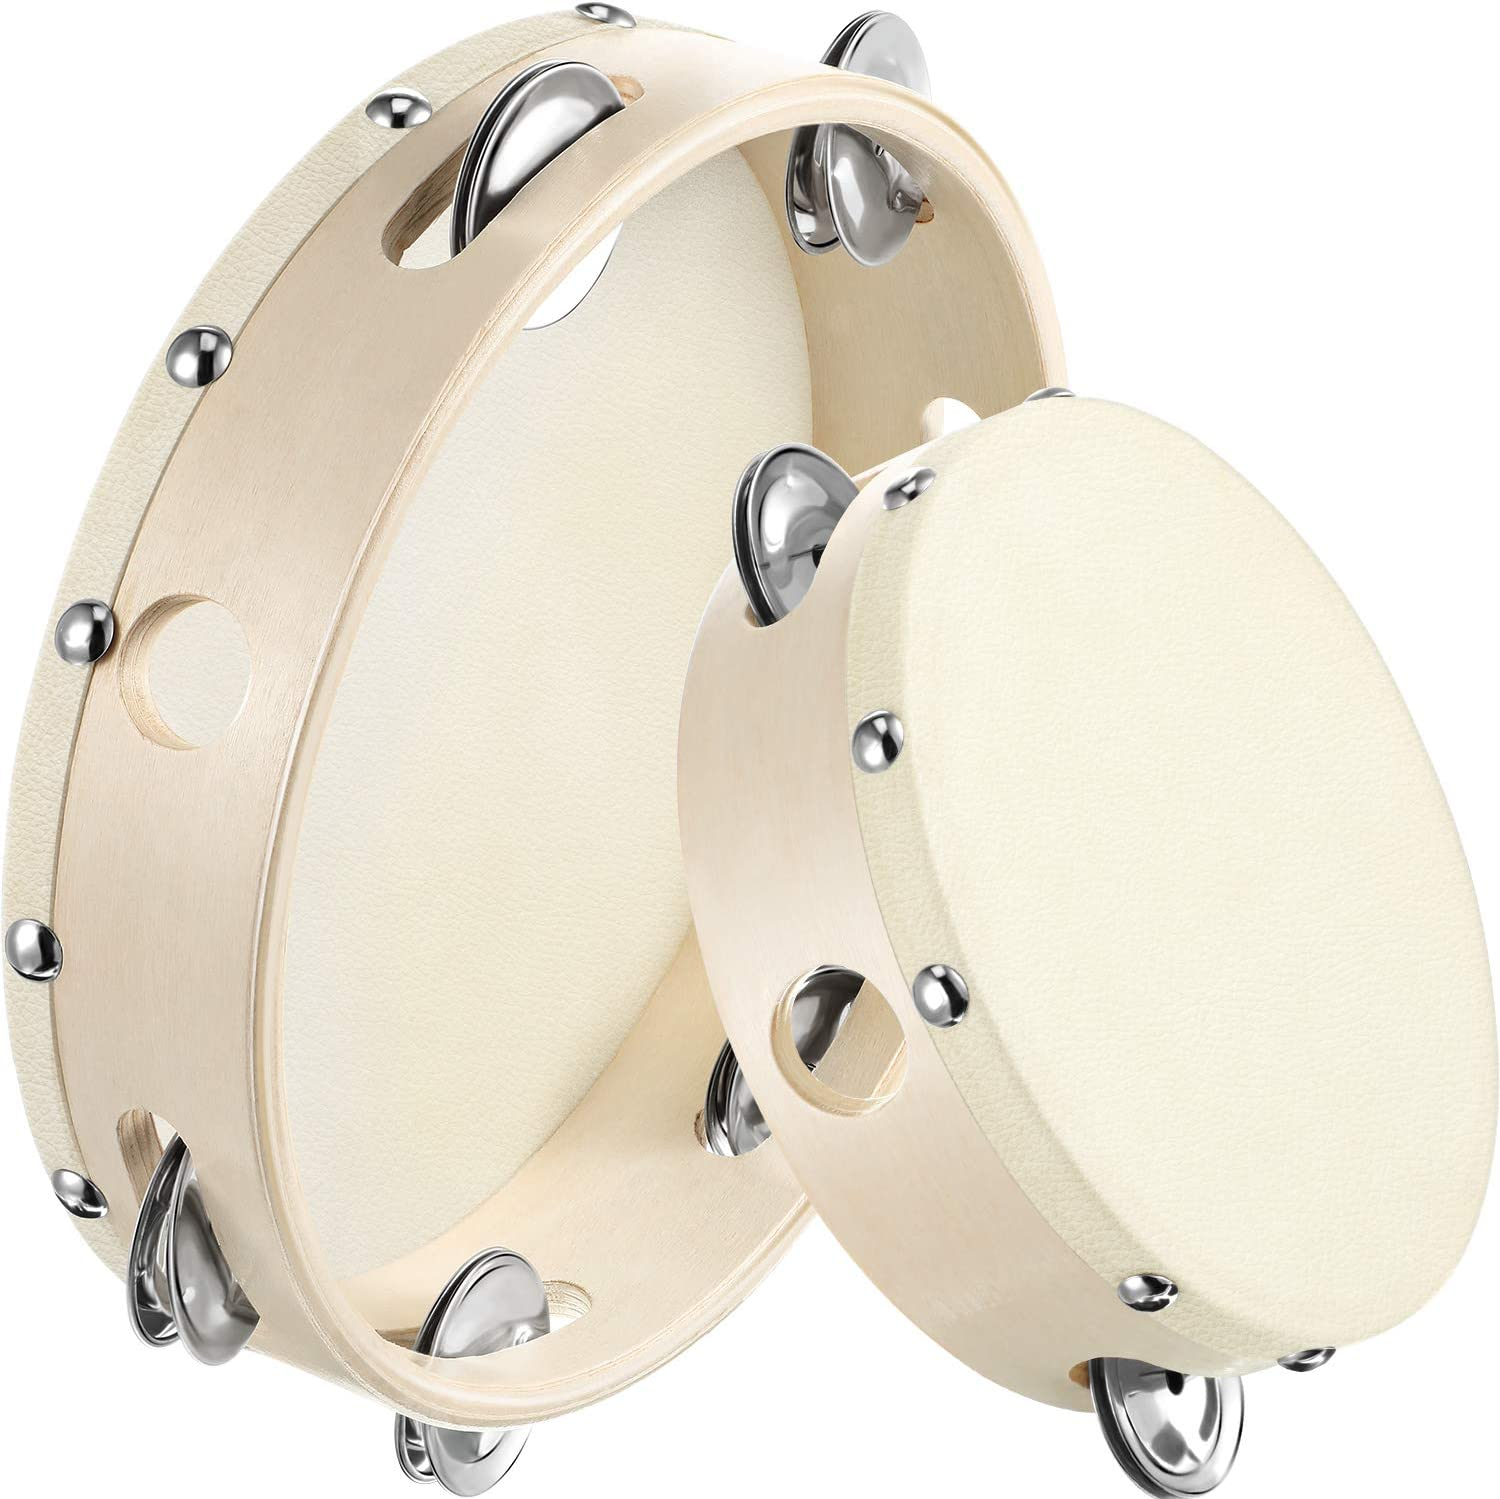 2 Pieces (6 Inch and 8 Inch) Wood Handheld Tambourine Single Row, Tambourines with Jingle Bells(Ecru)